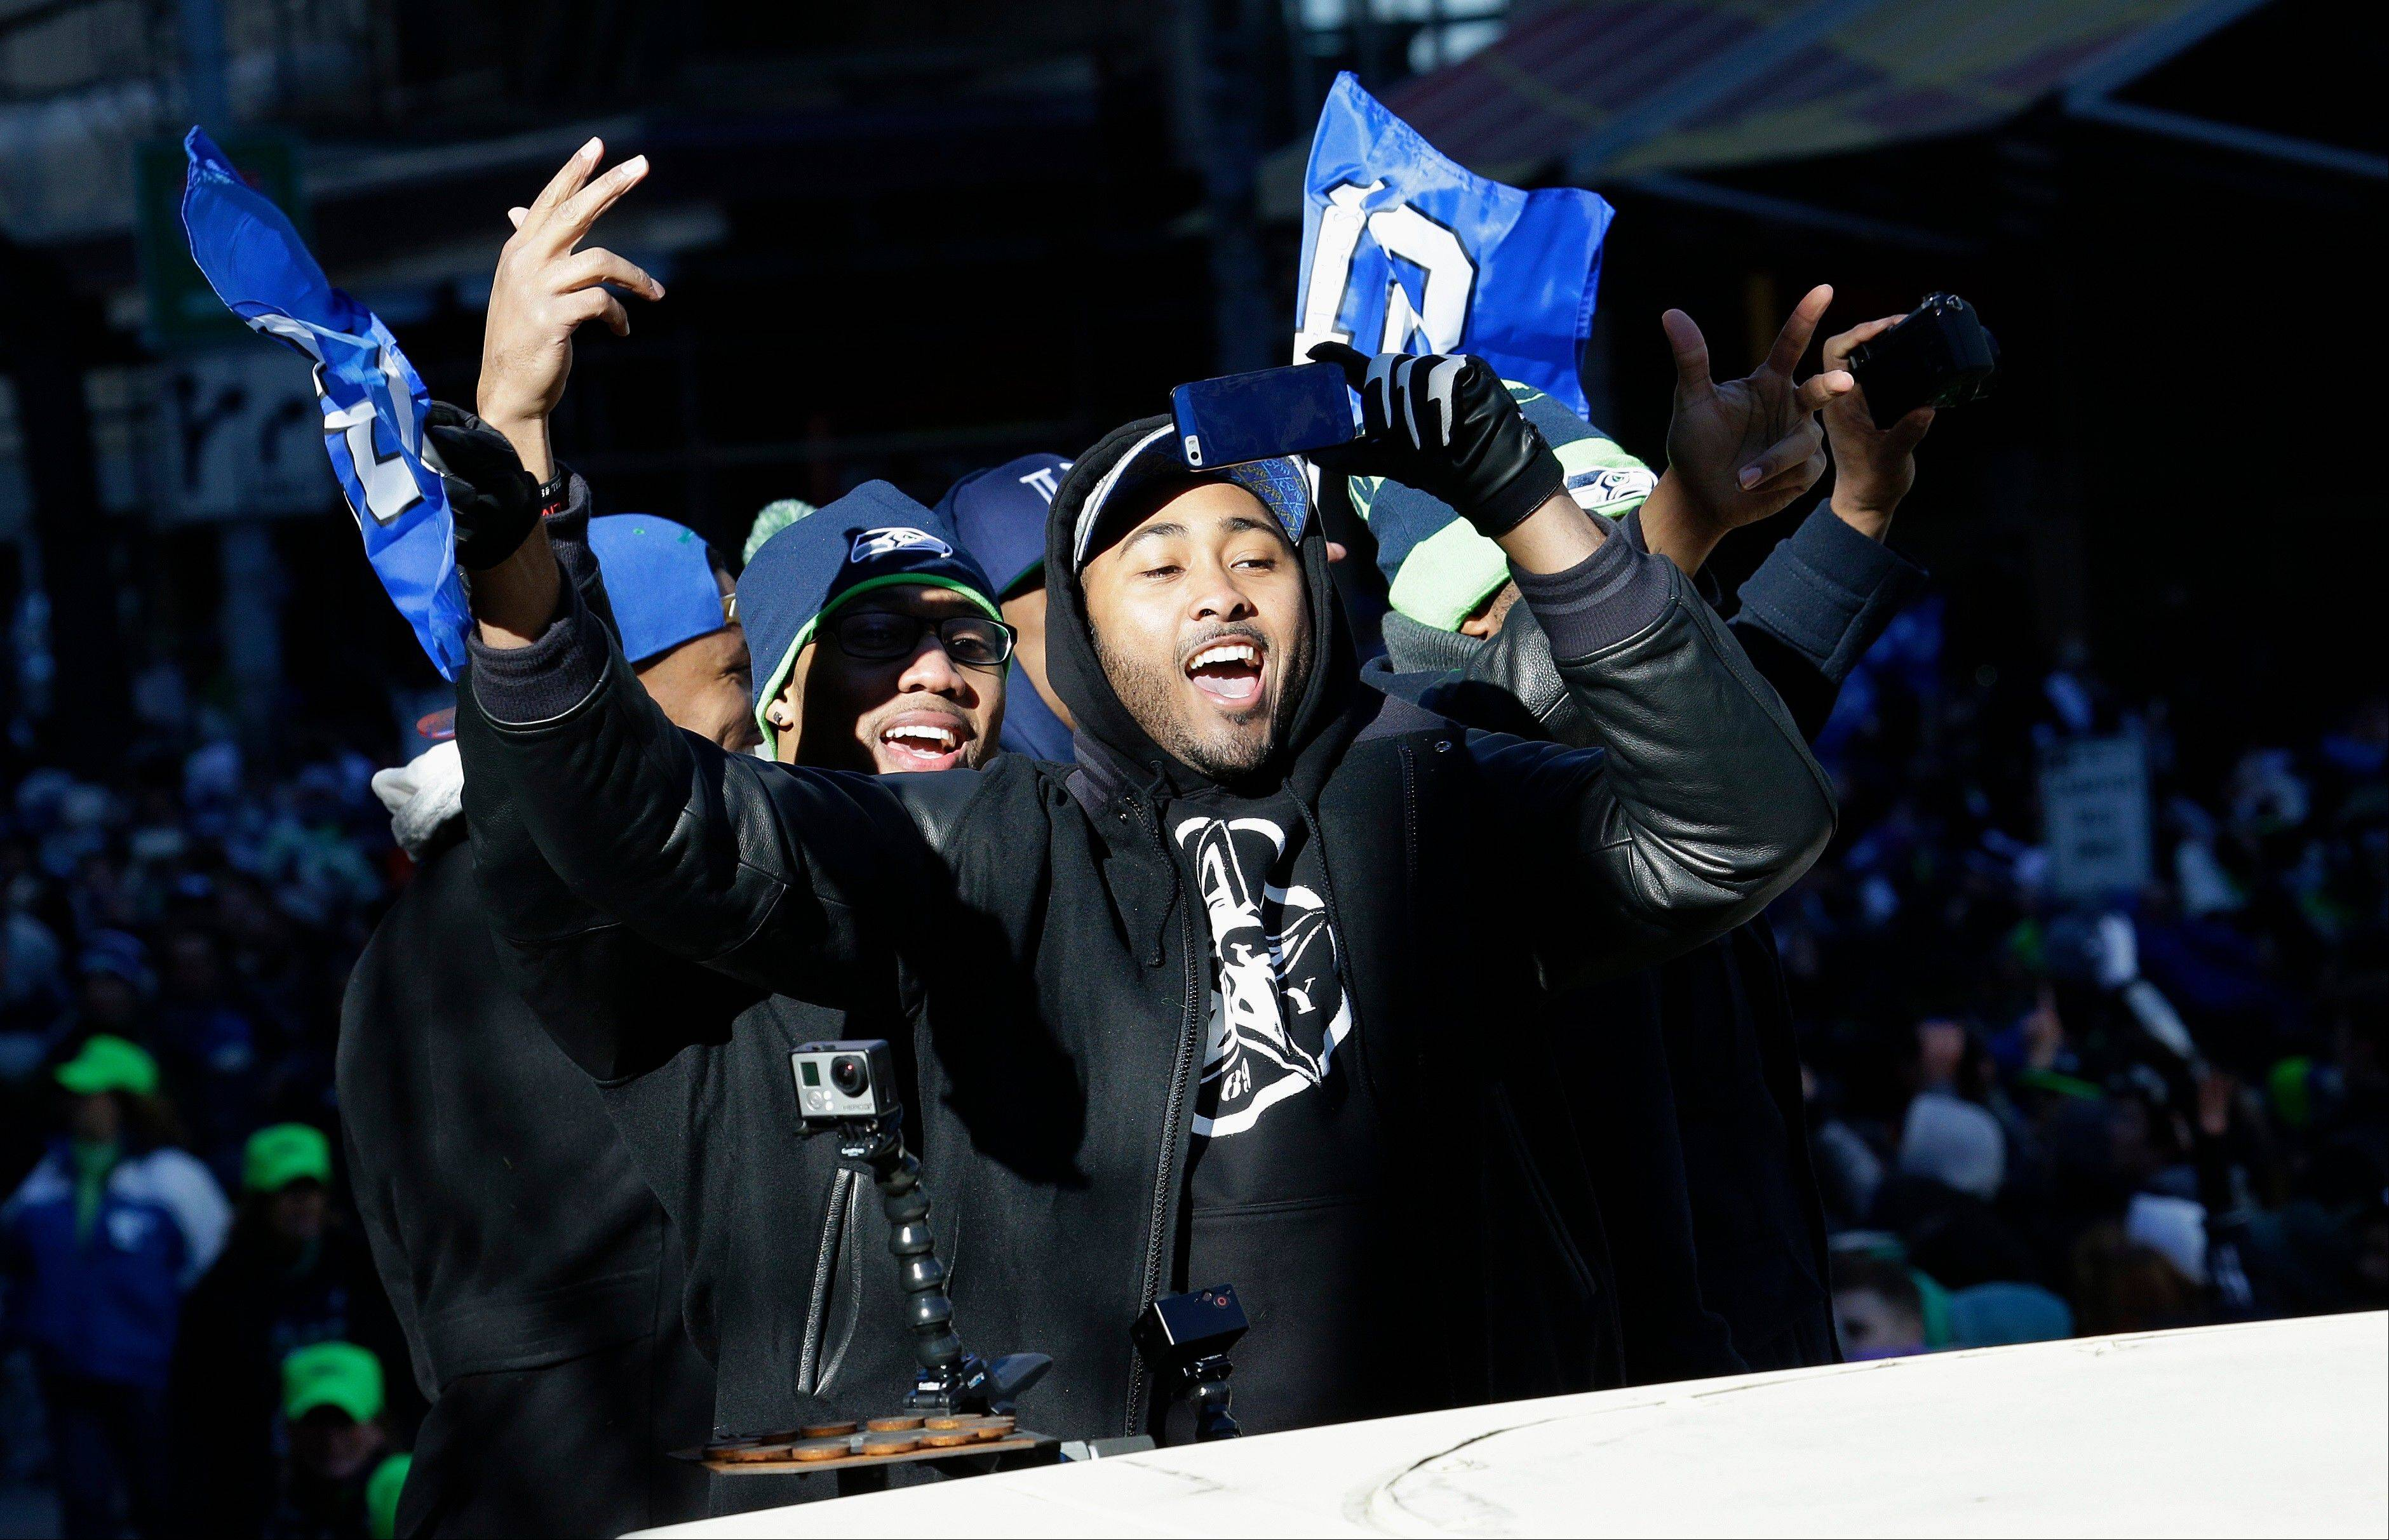 Seattle Seahawks linebacker and Super Bowl MVP Malcolm Smith gestures to fans during the Super Bowl champions parade, Wednesday, Feb. 5, 2014, in Seattle. The Seahawks defeated the Denver Broncos 43-8 in NFL football's Super Bowl XLVIII on Sunday.